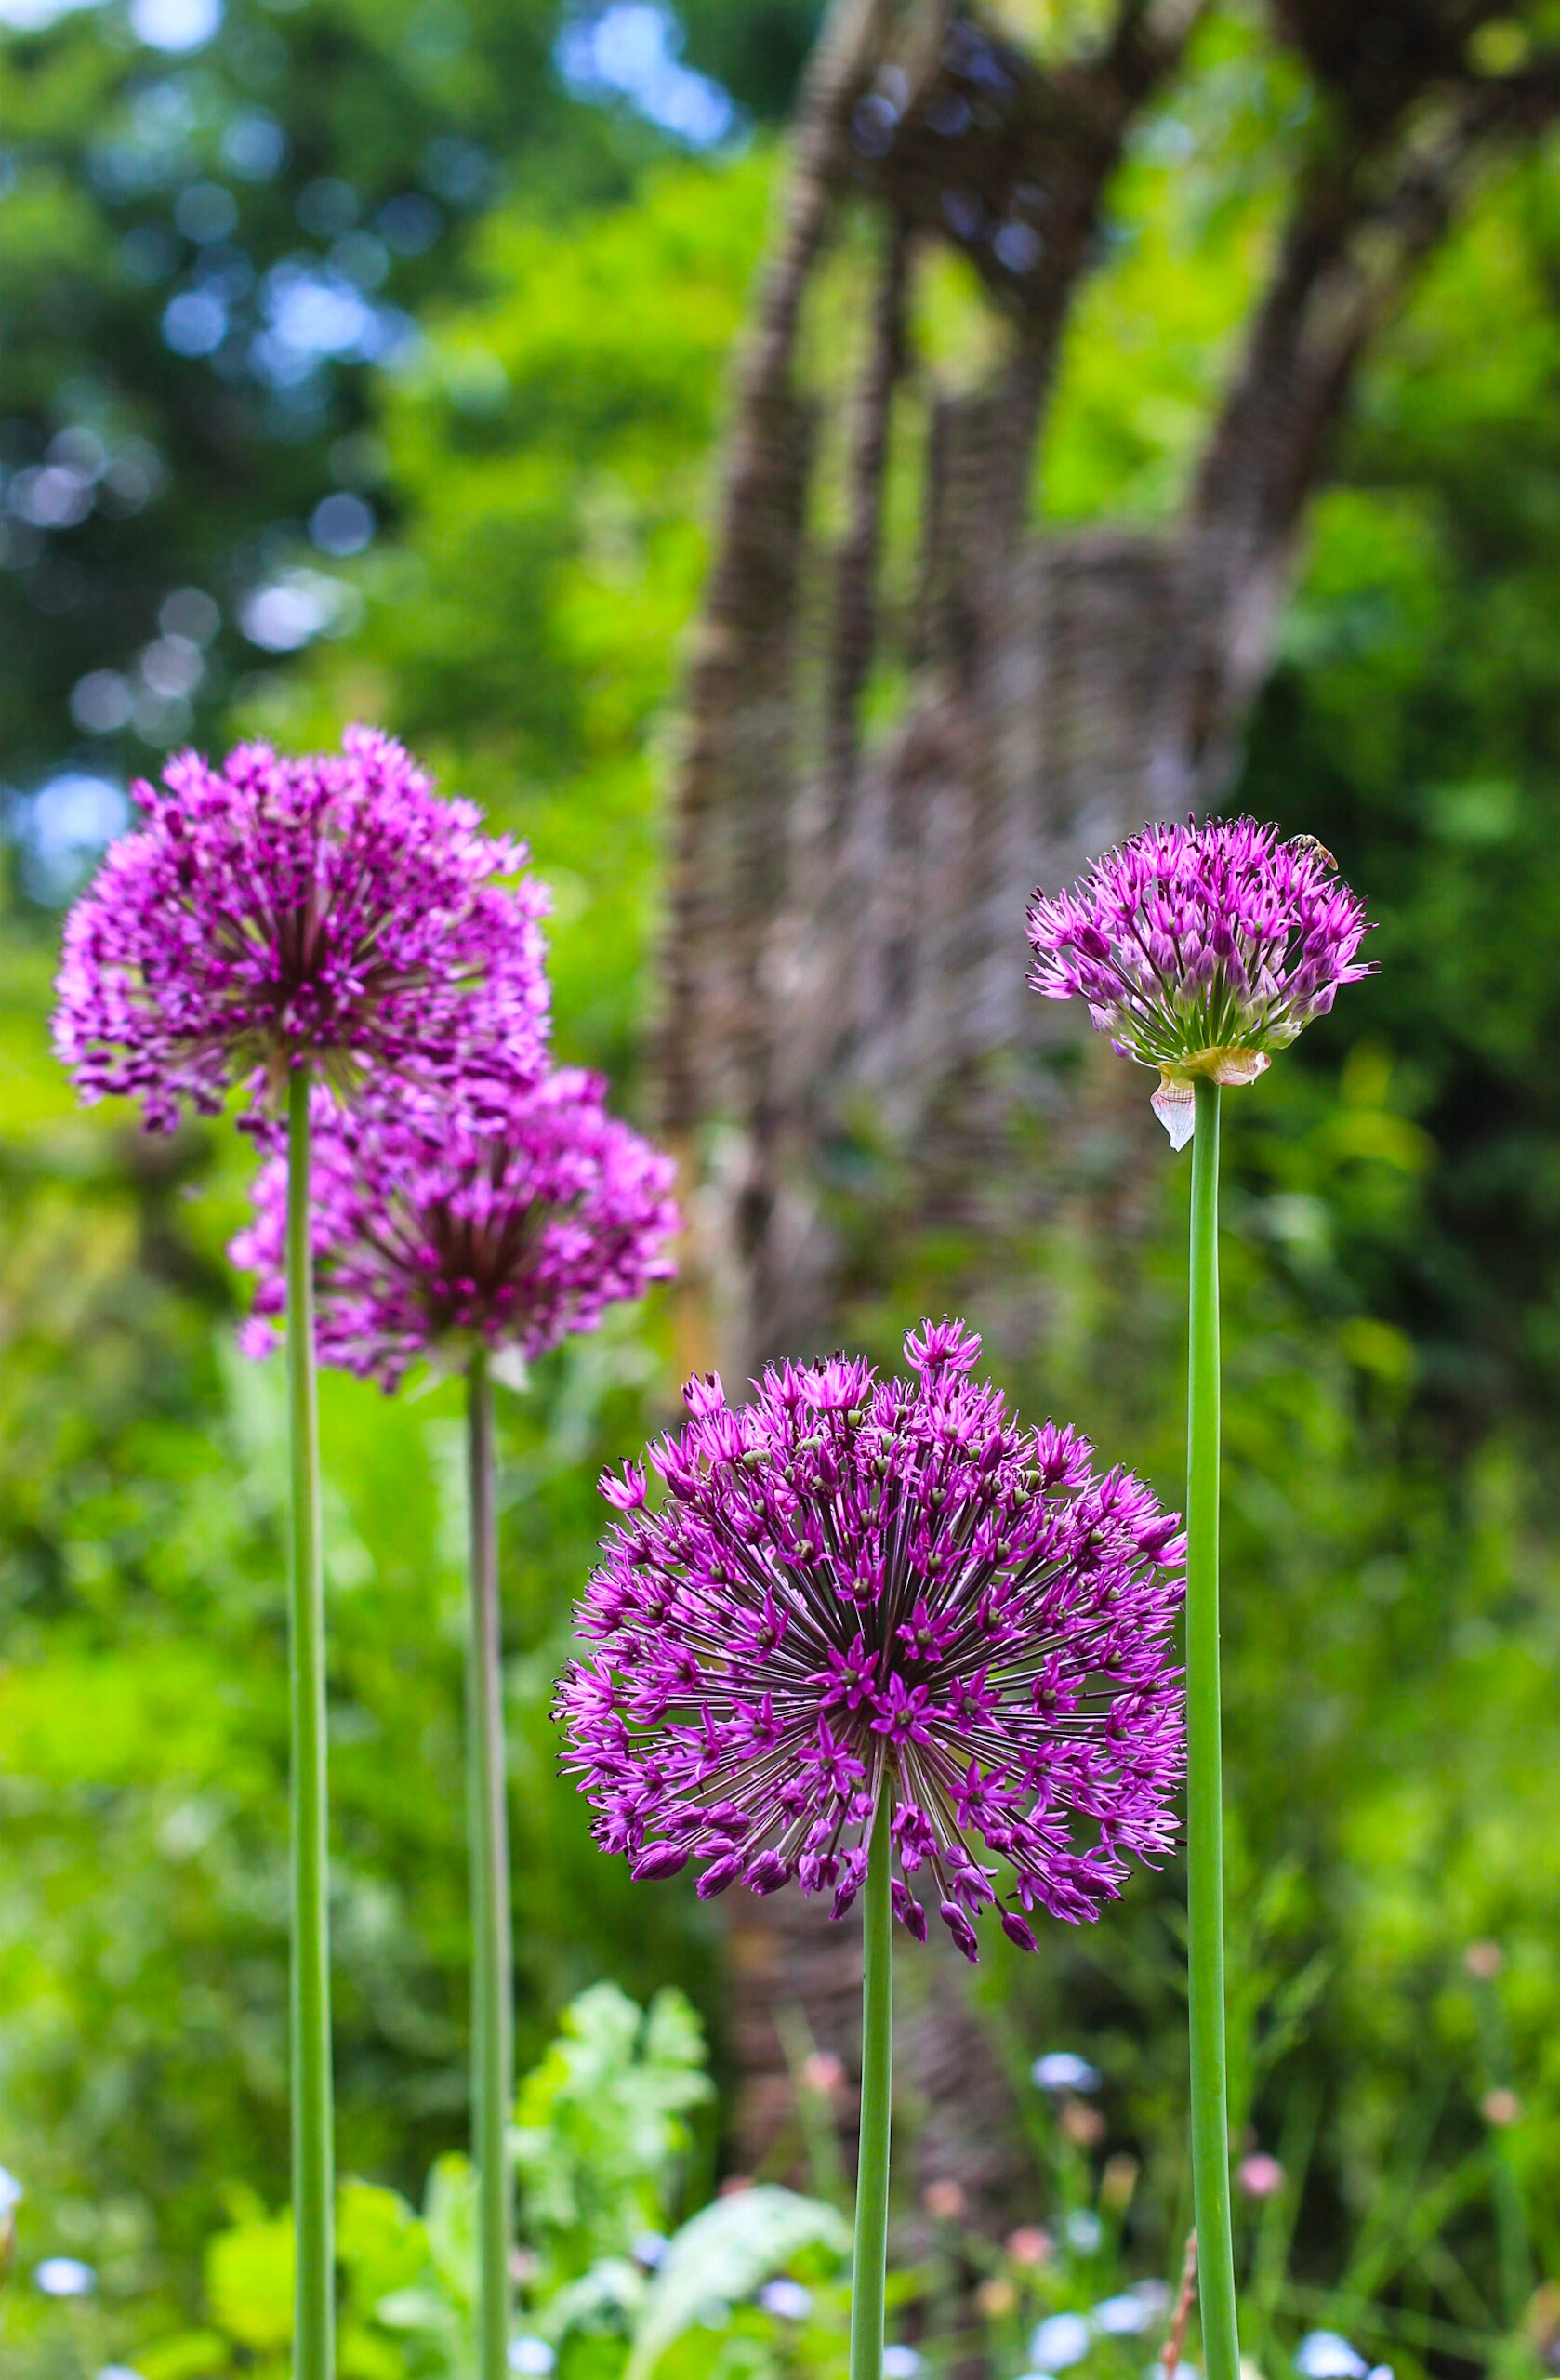 Stately Alliums stand to attention in amongst the vegetables.